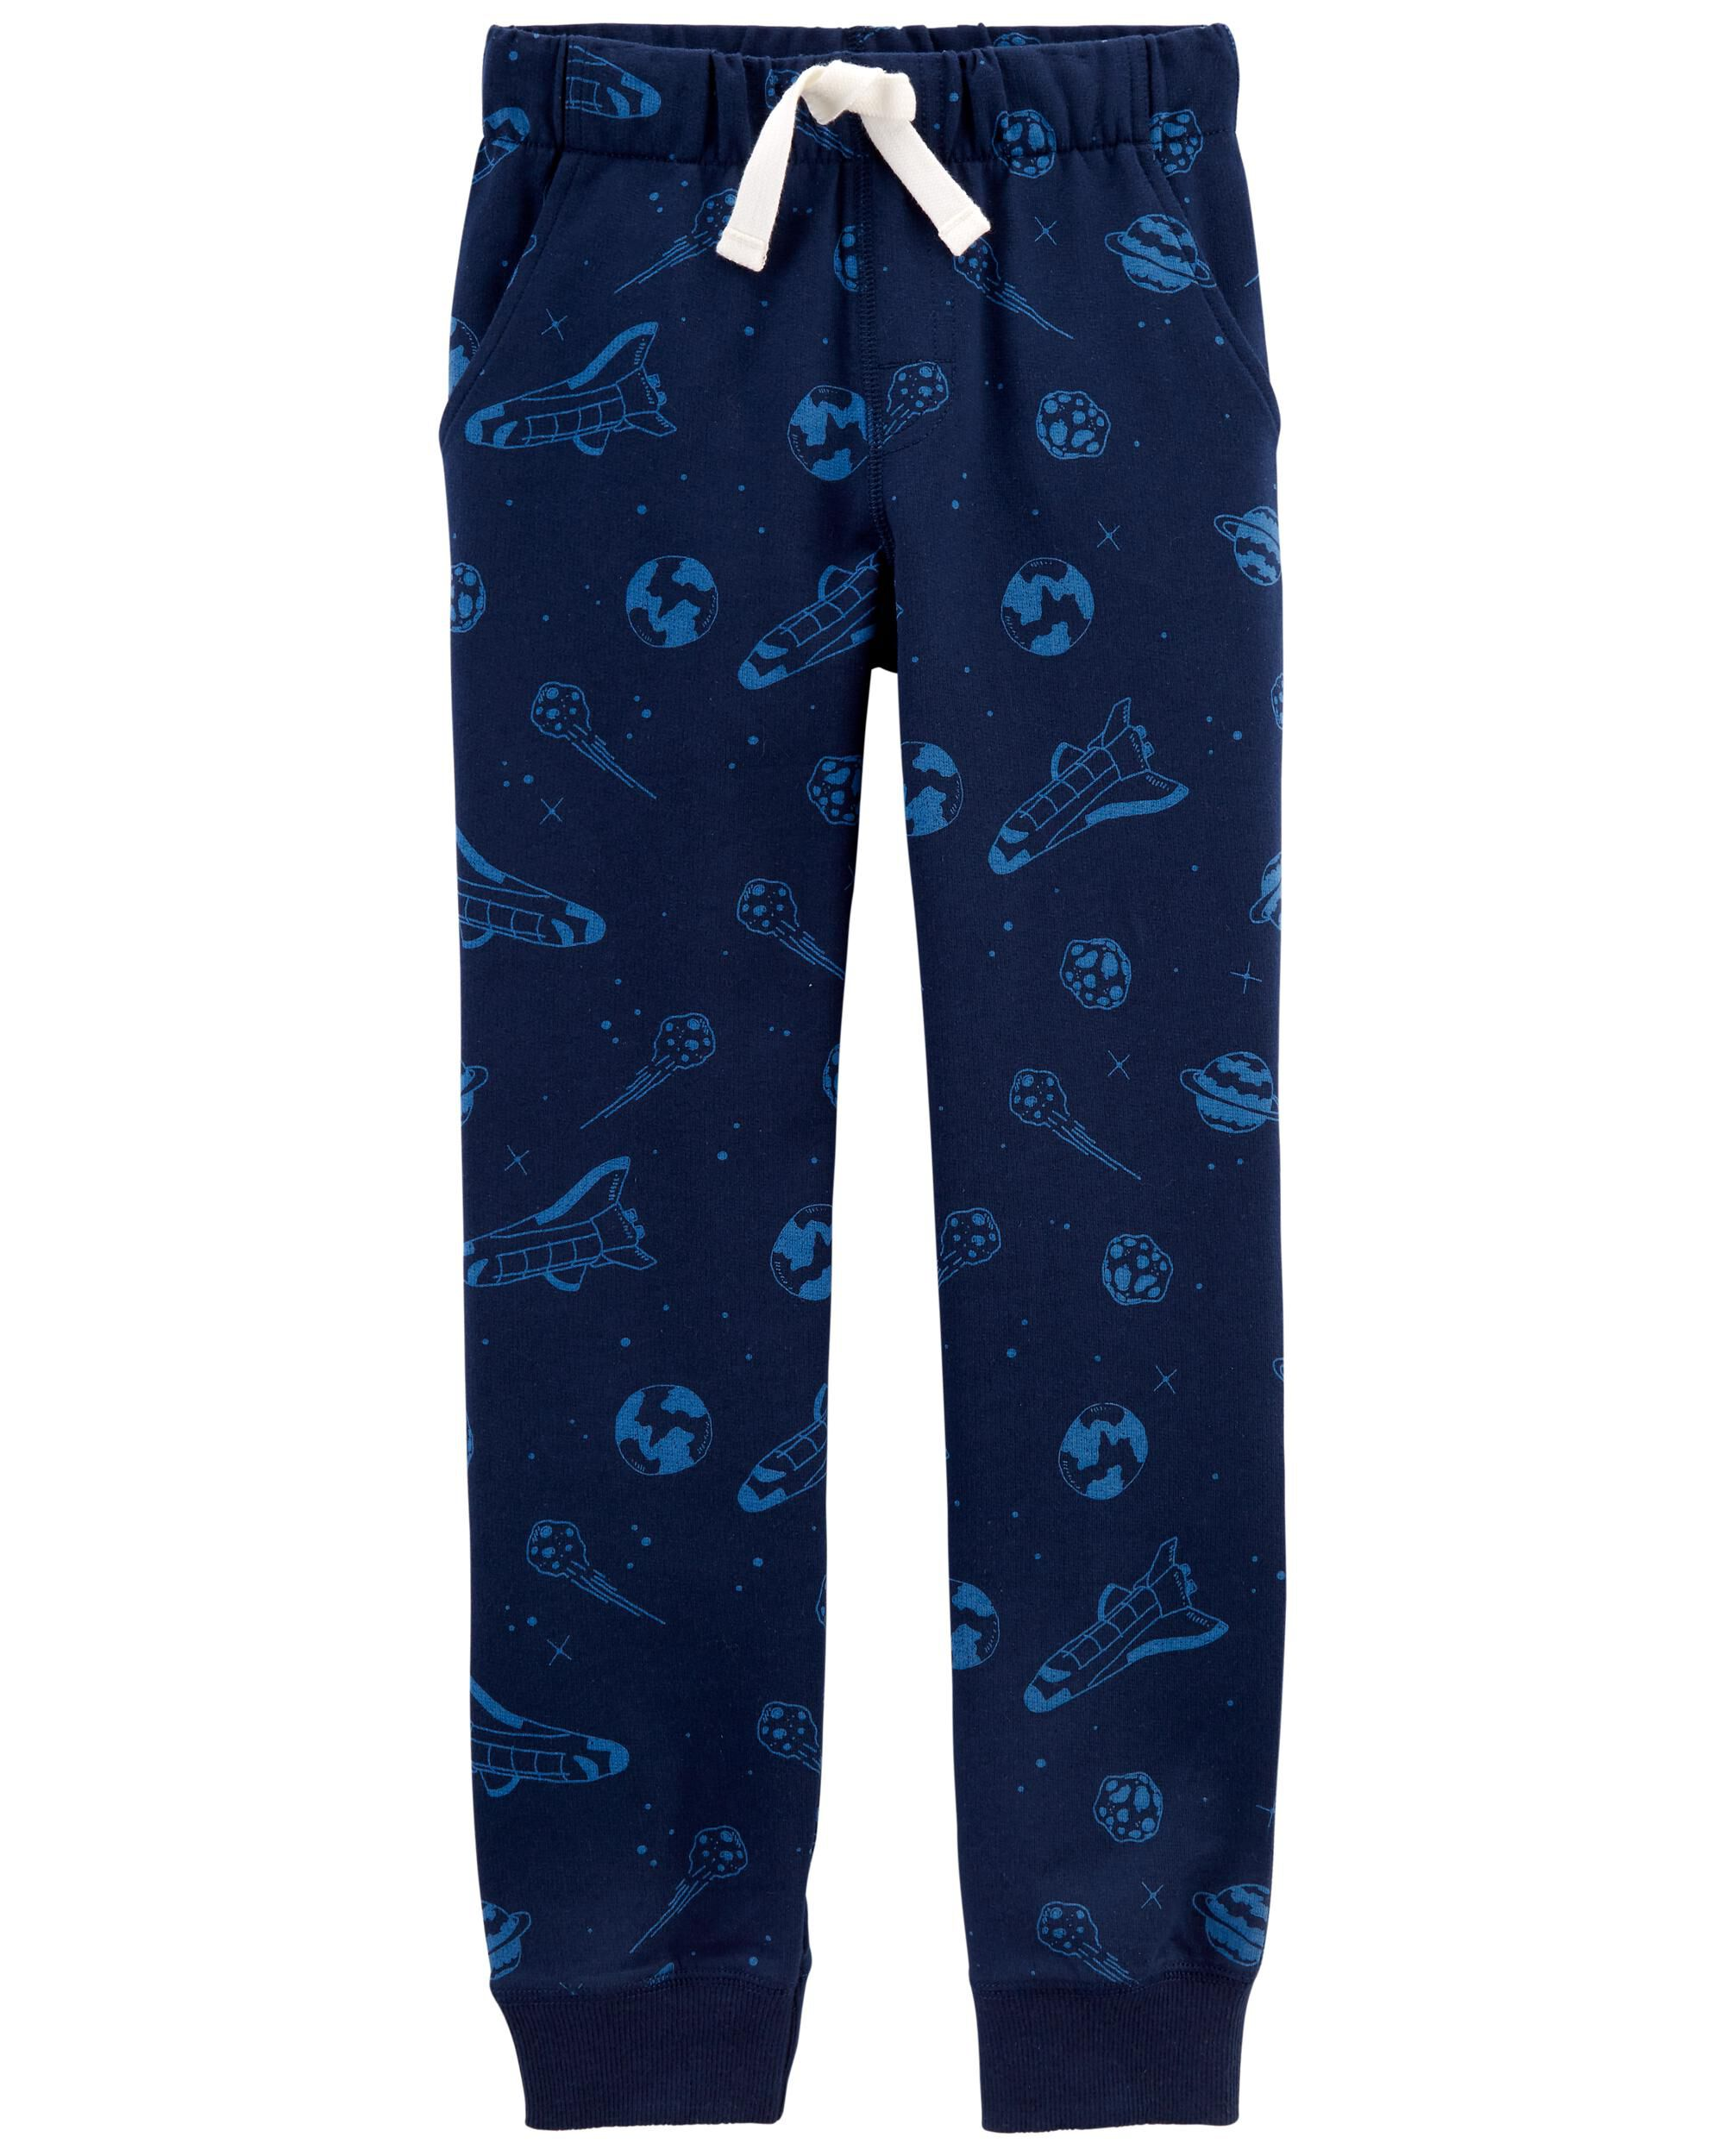 *DOORBUSTER*Space French Terry Joggers